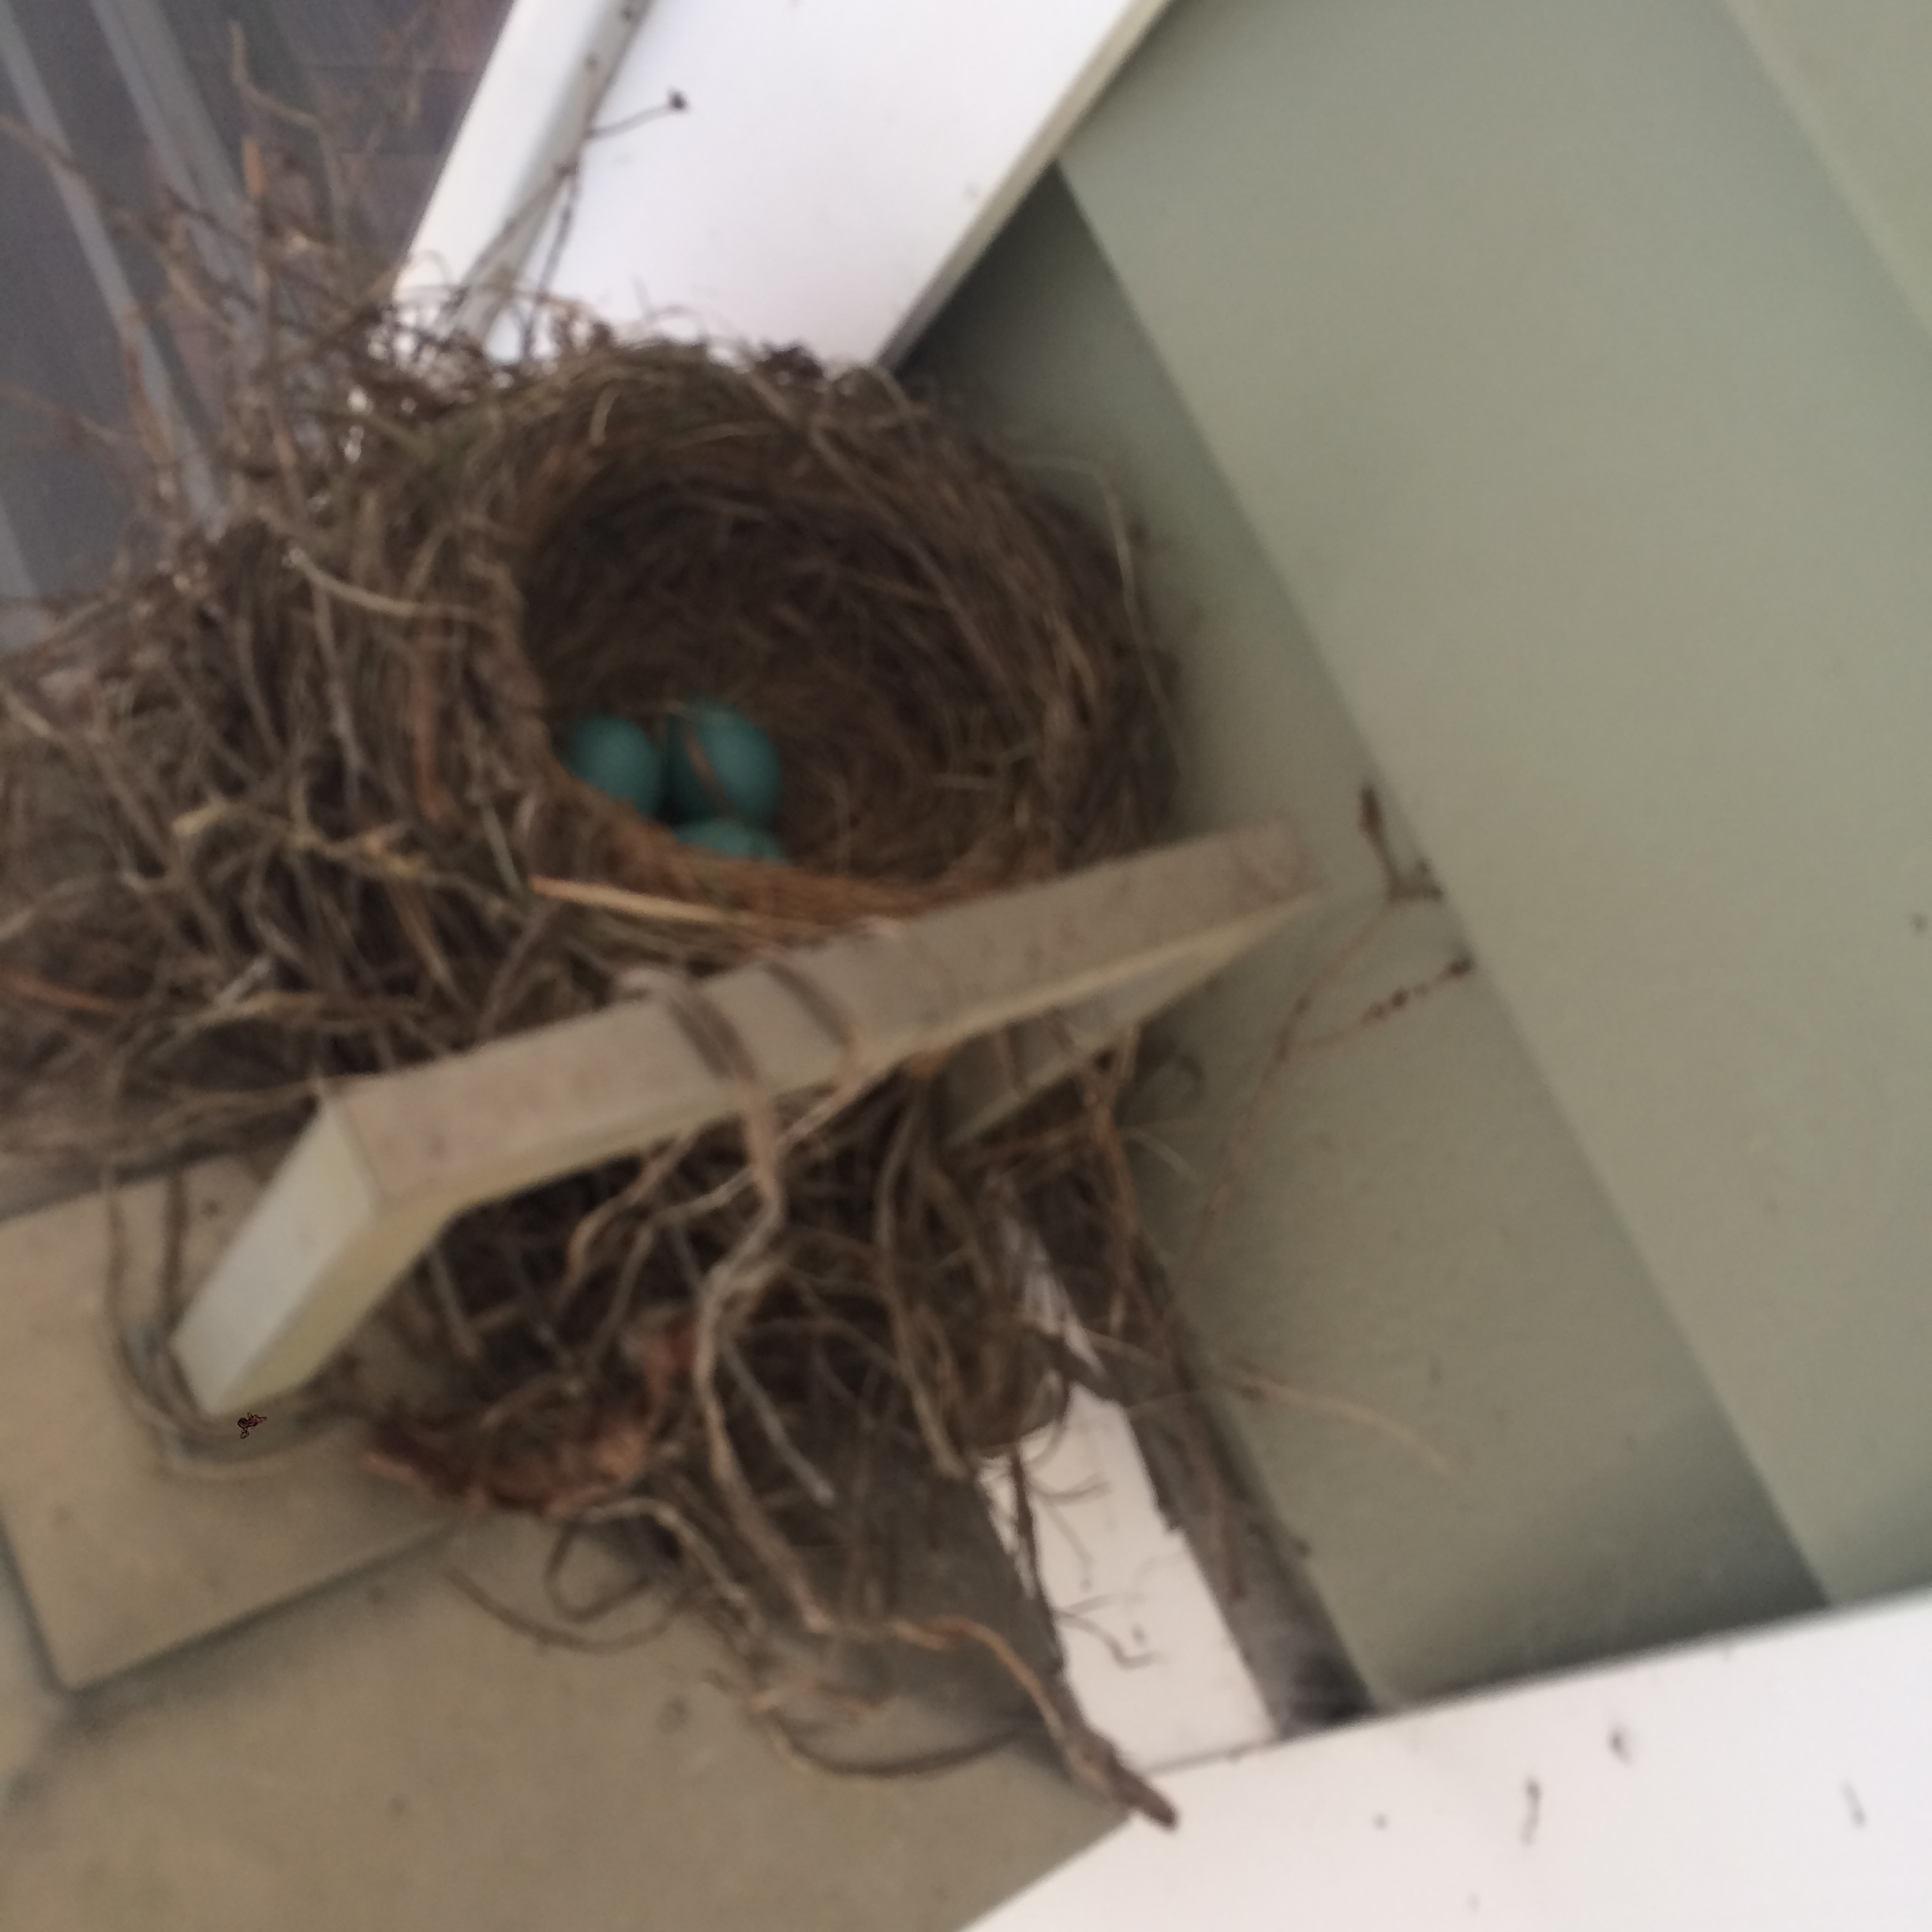 Three little eggs sitting in the nest.